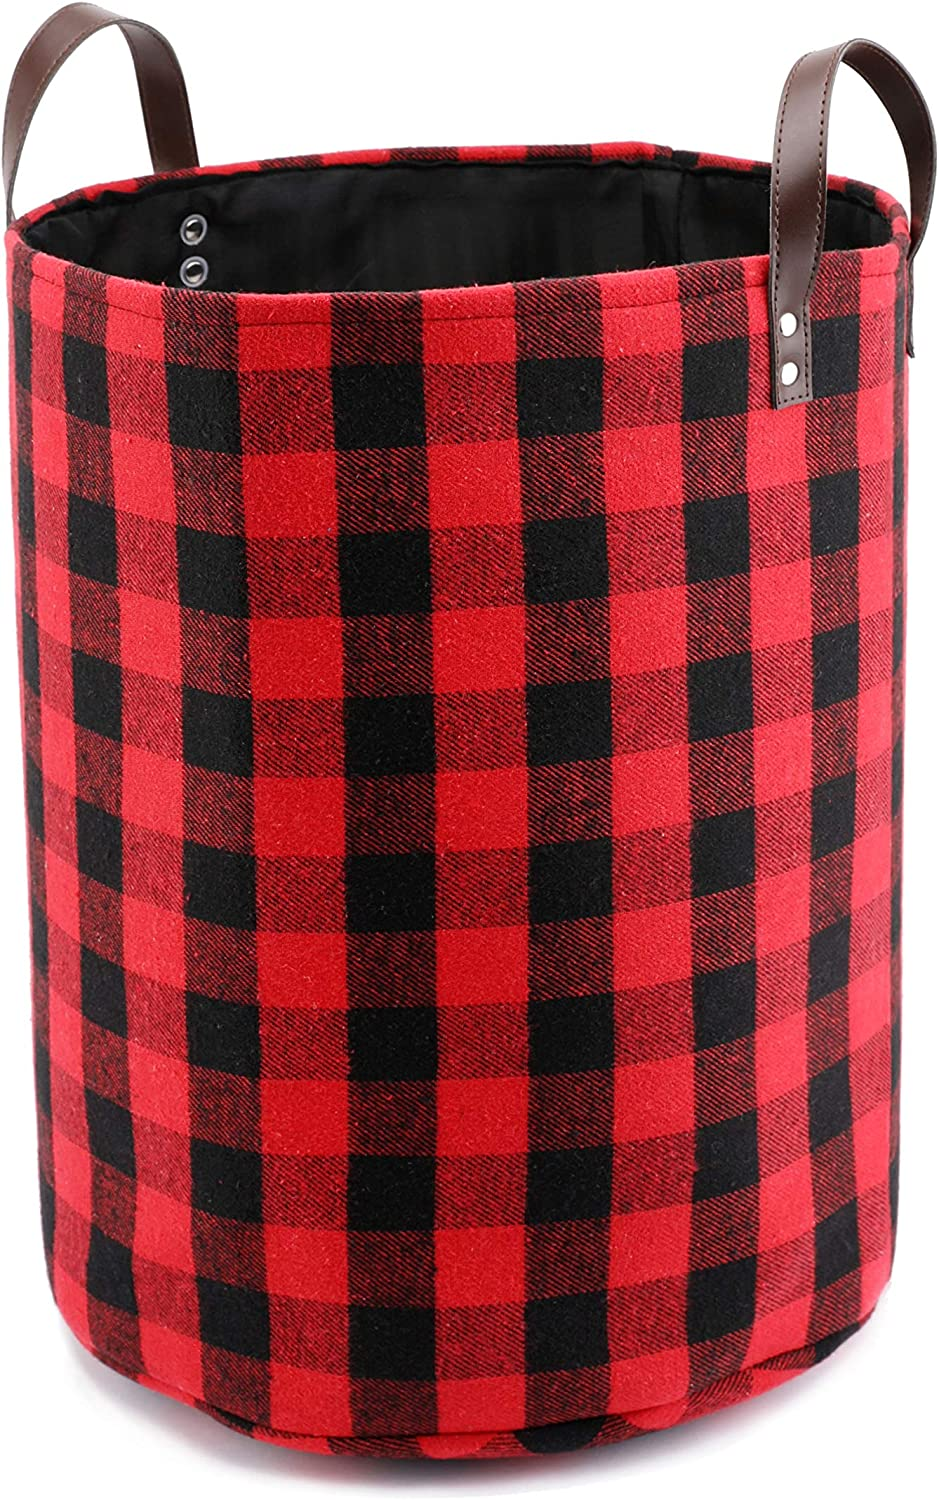 """17.7"""" Large Collapsible Storage Basket with Leather Handles, Red Buffalo Plaid Woolen Fabric Foldable Tote Bags Round Home Decorative Organizer Bin"""